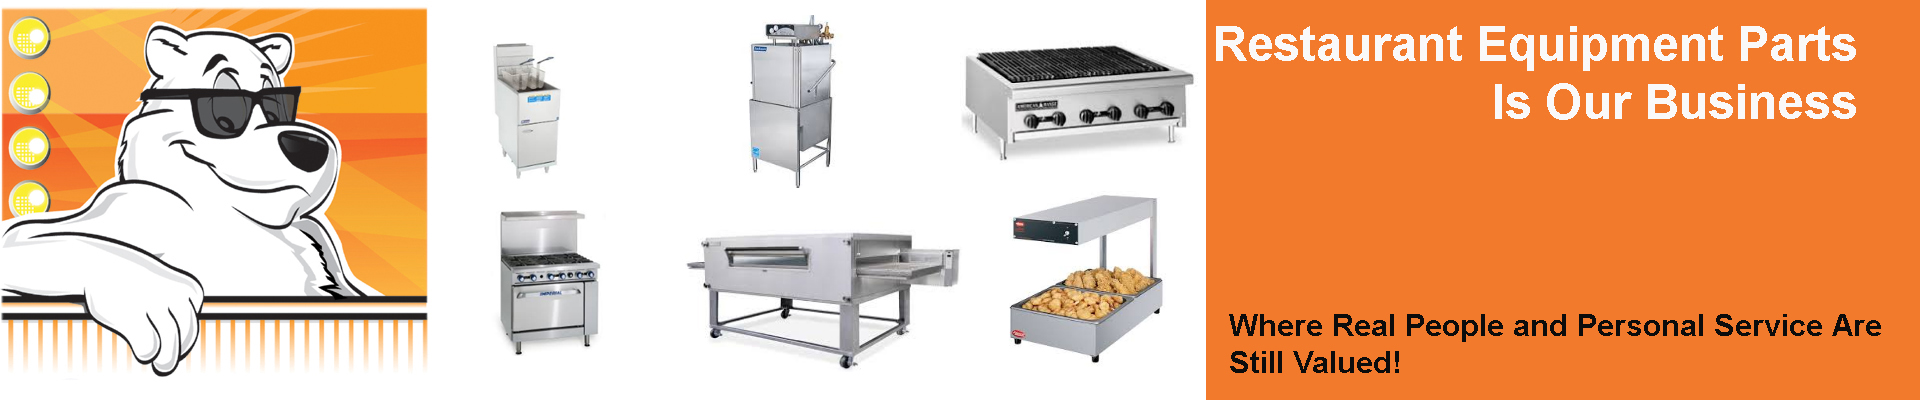 Expired Restaurant Equipment Parts Coupon Codes